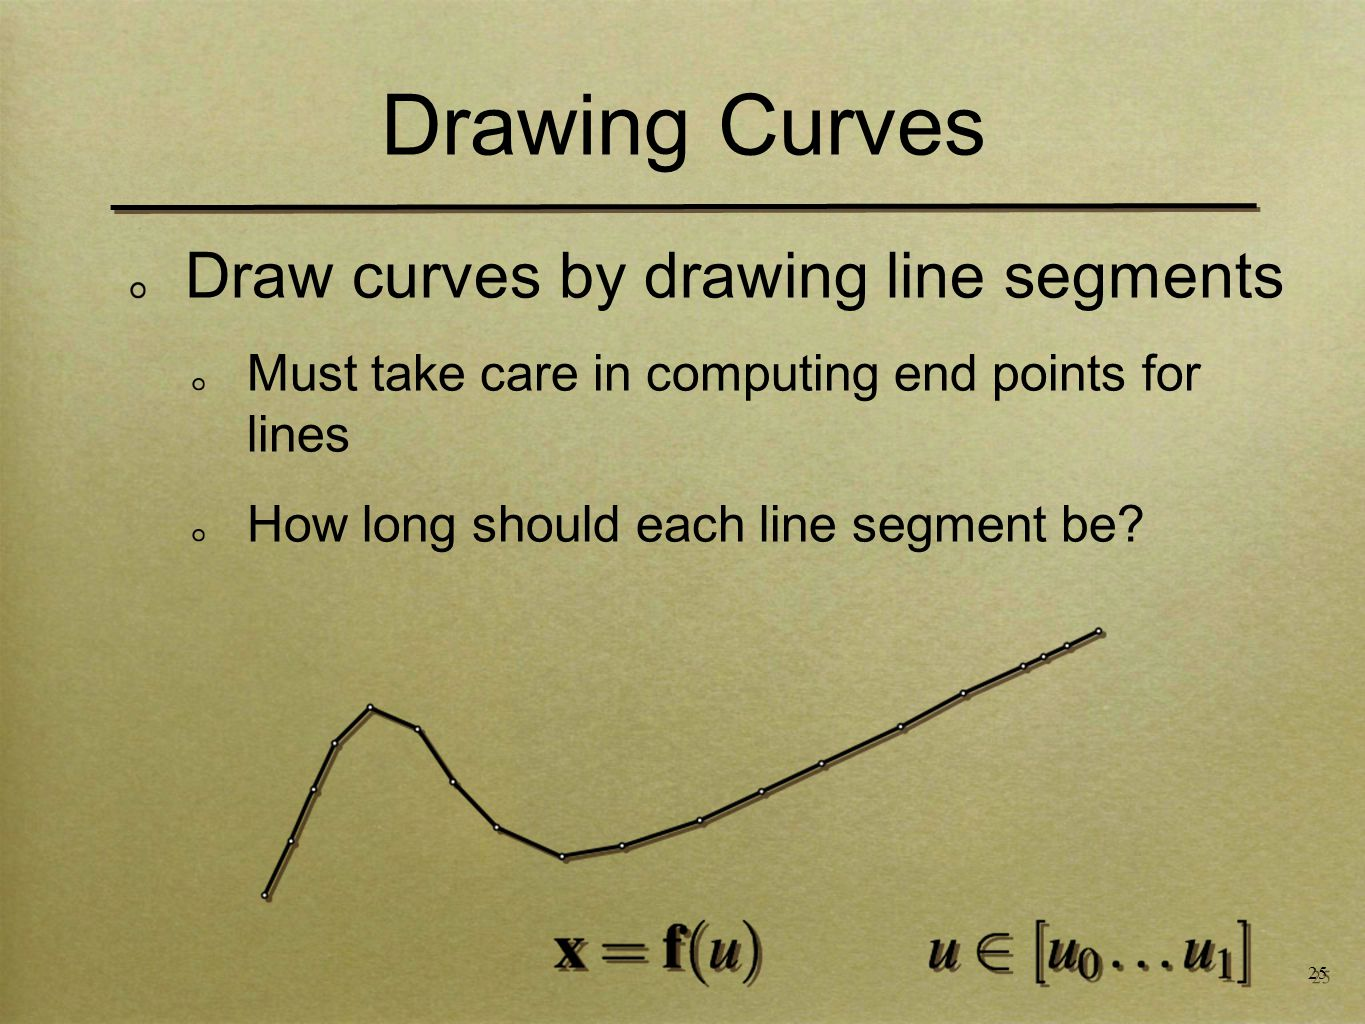 25 Draw curves by drawing line segments Must take care in computing end points for lines How long should each line segment be.